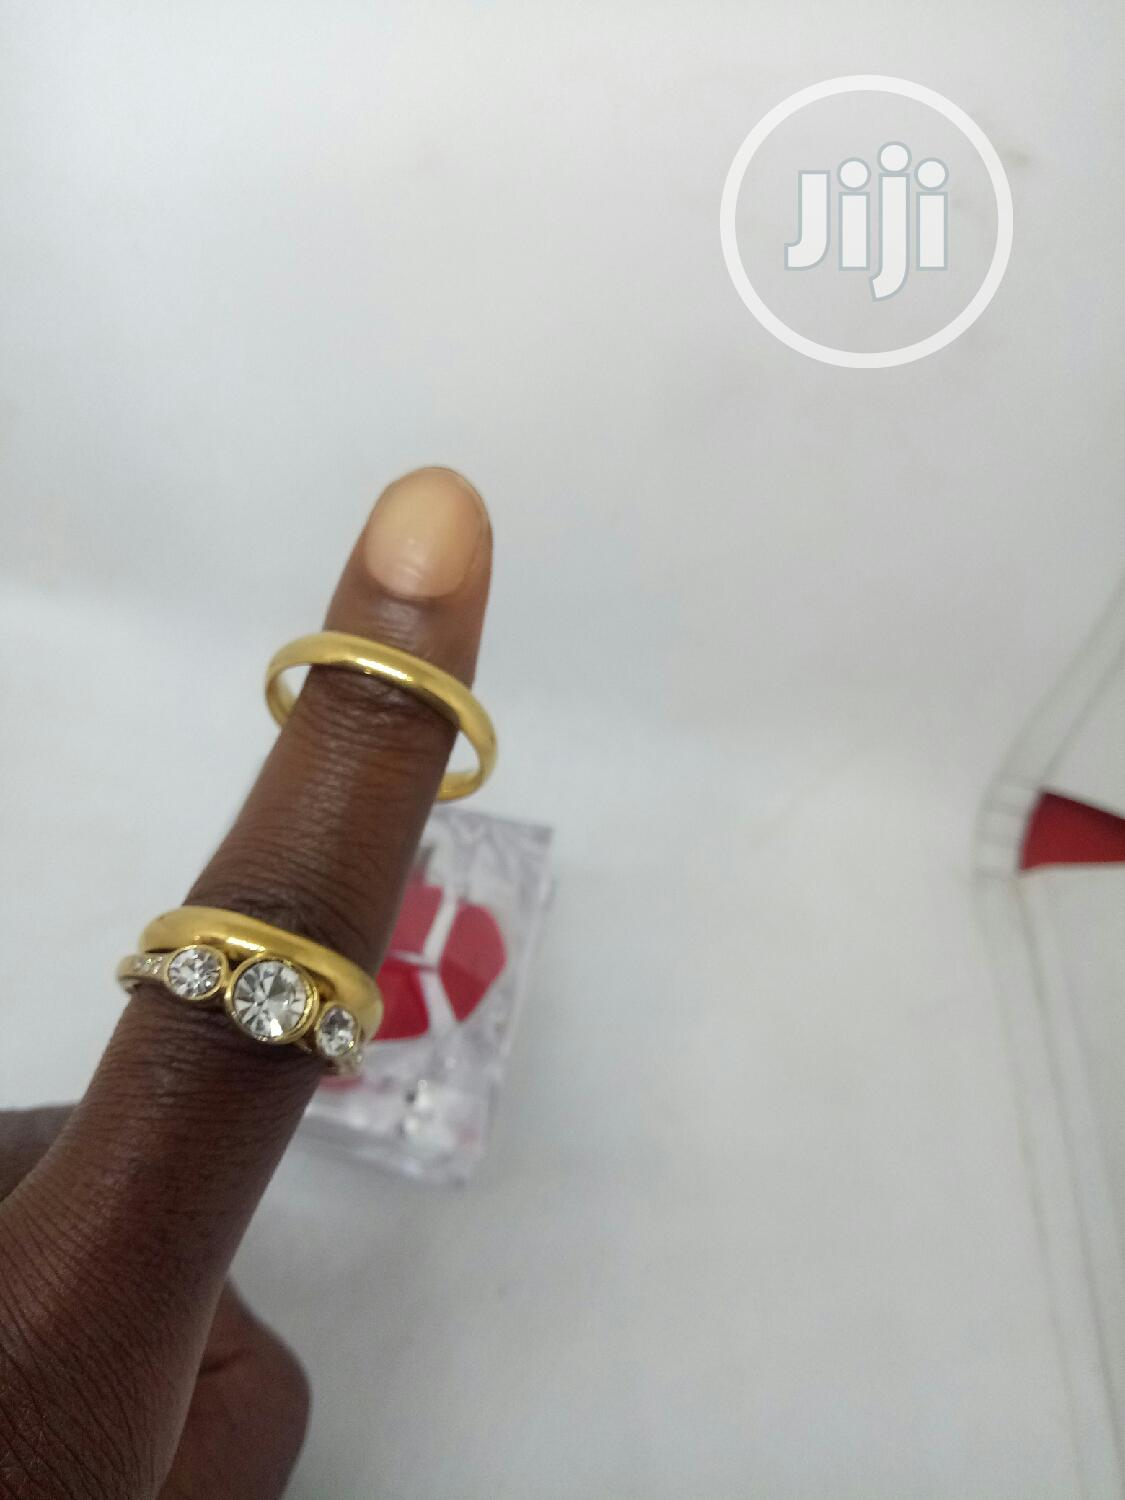 Rose Indiana Couples Set of Wedding Ring 0001- Gold | Wedding Wear & Accessories for sale in Ojodu, Lagos State, Nigeria